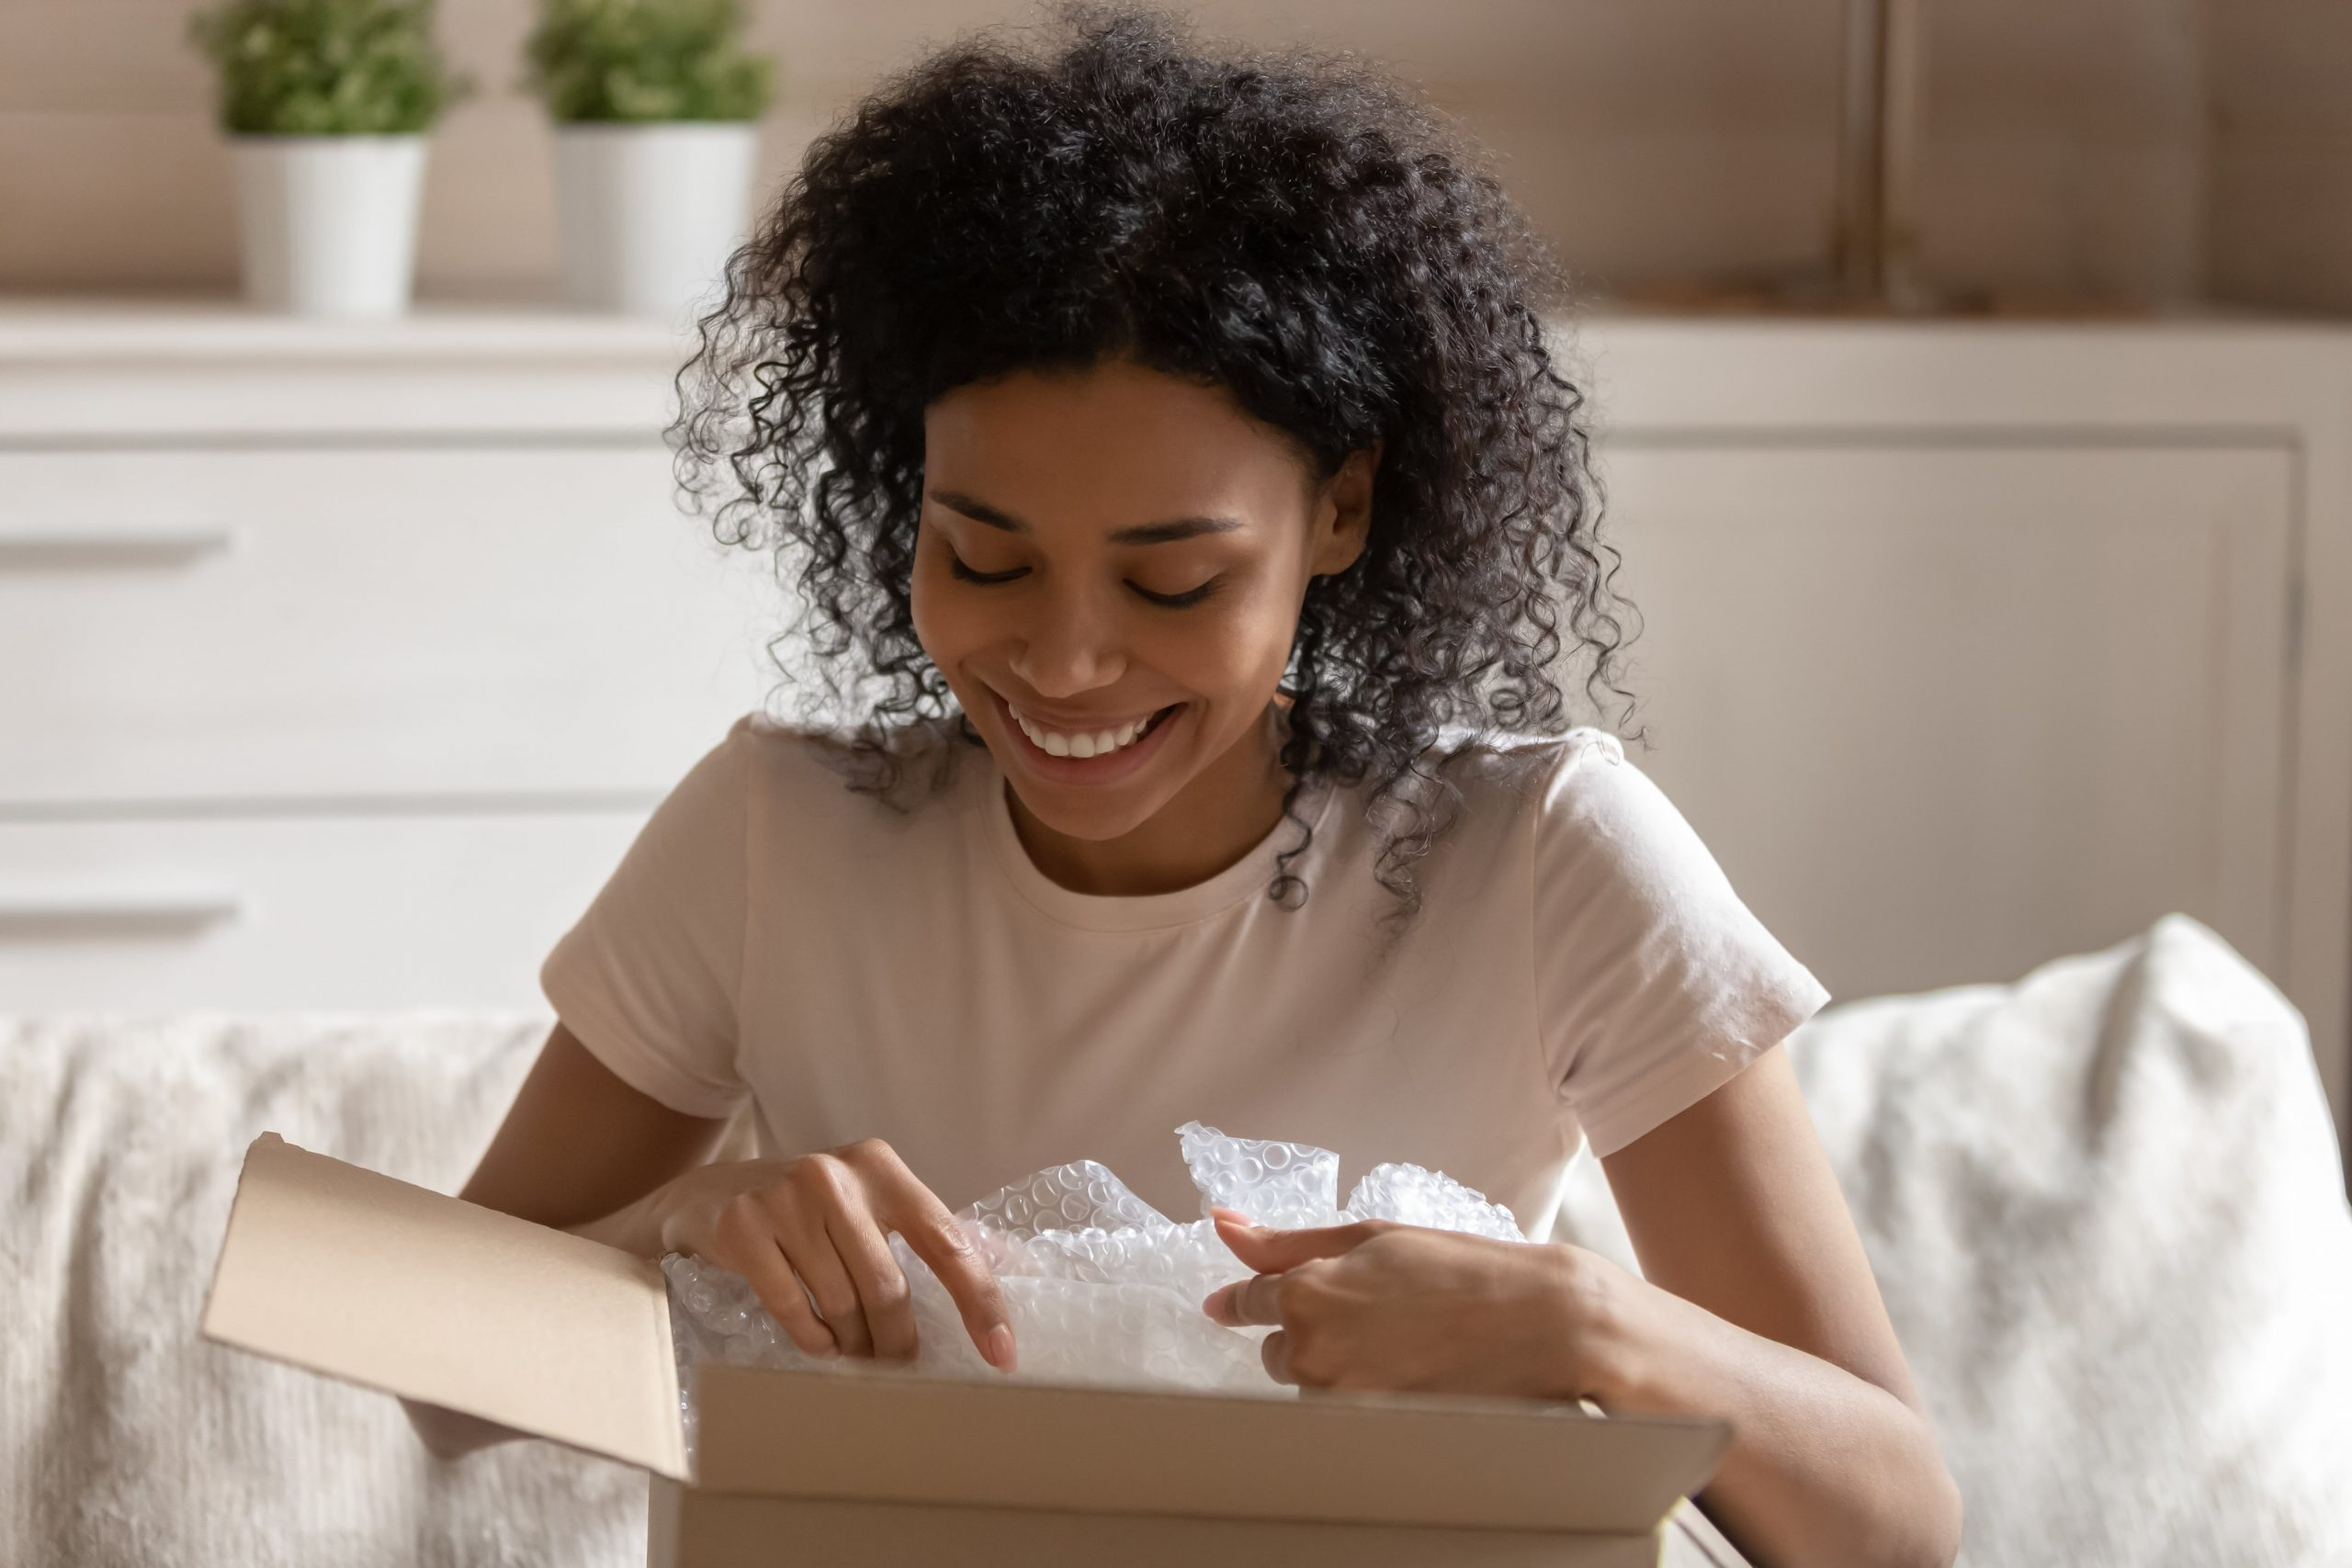 Young woman sitting on couch opening a box and smiling